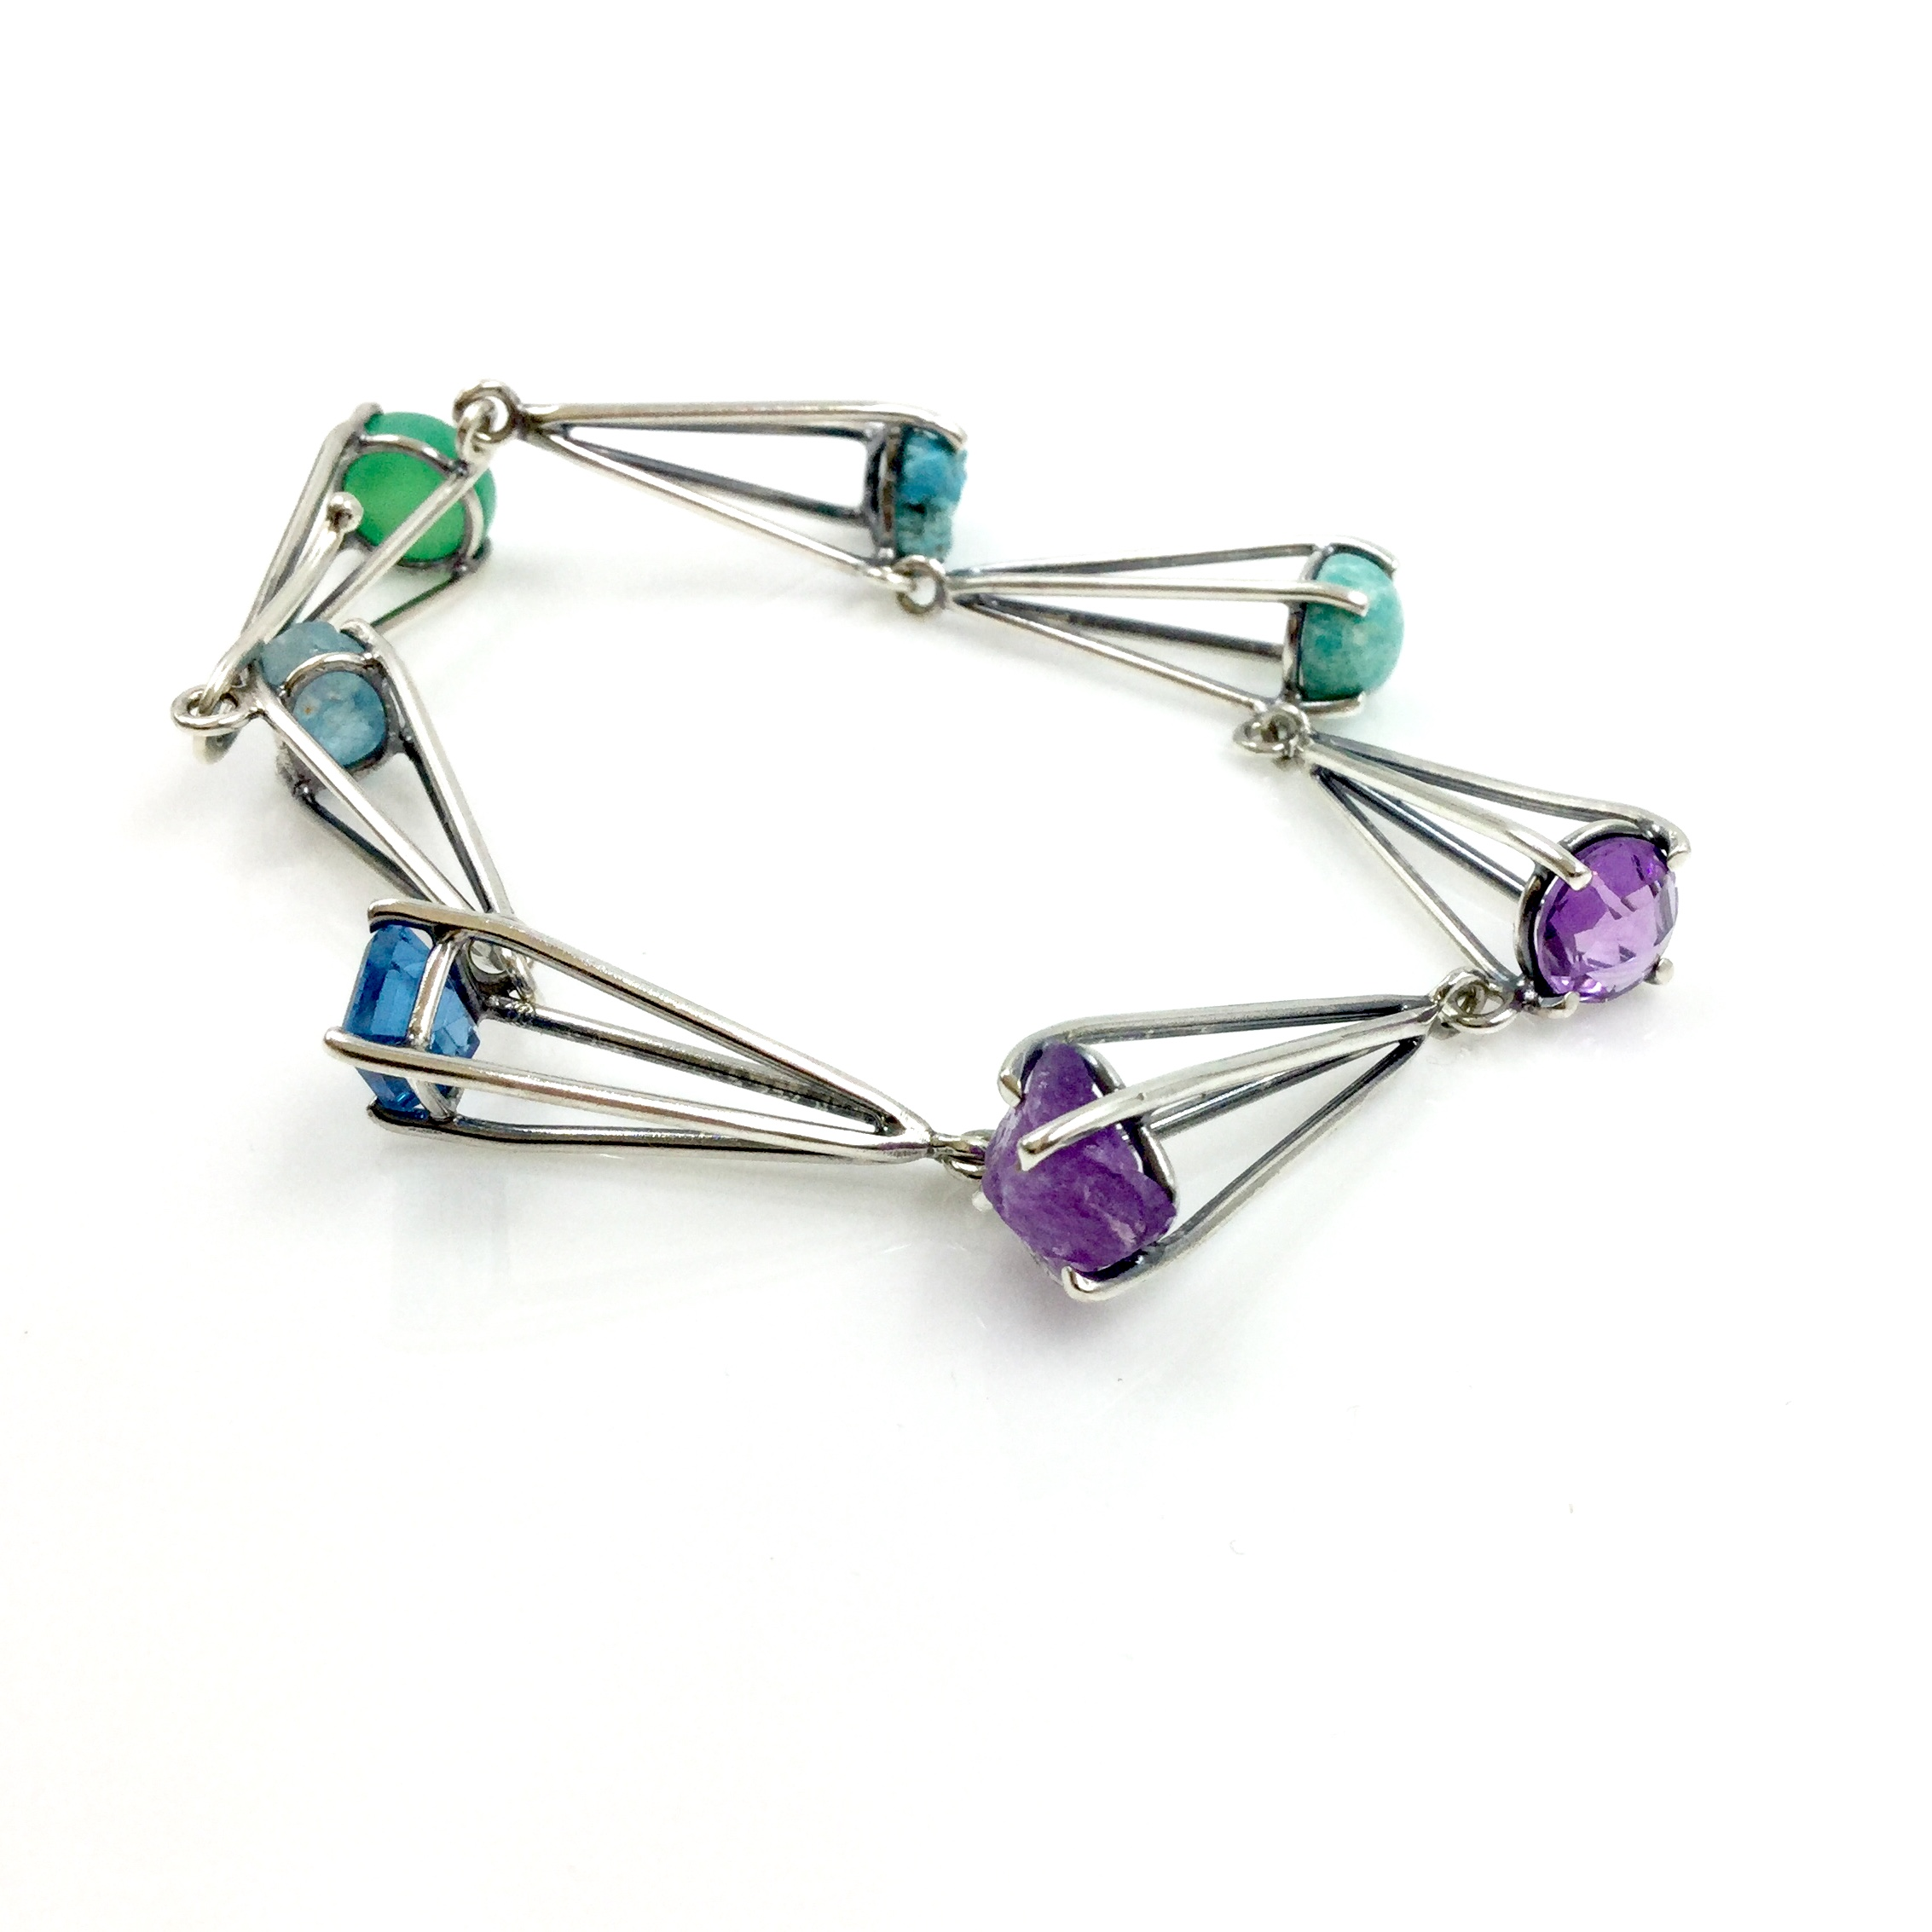 Joanna Gollberg, 7 Stone Set Row Bracelet, rough apatite, blue topaz, rough amethyst, ammonite, rough turquoise, chrysoprase, and sterling silver